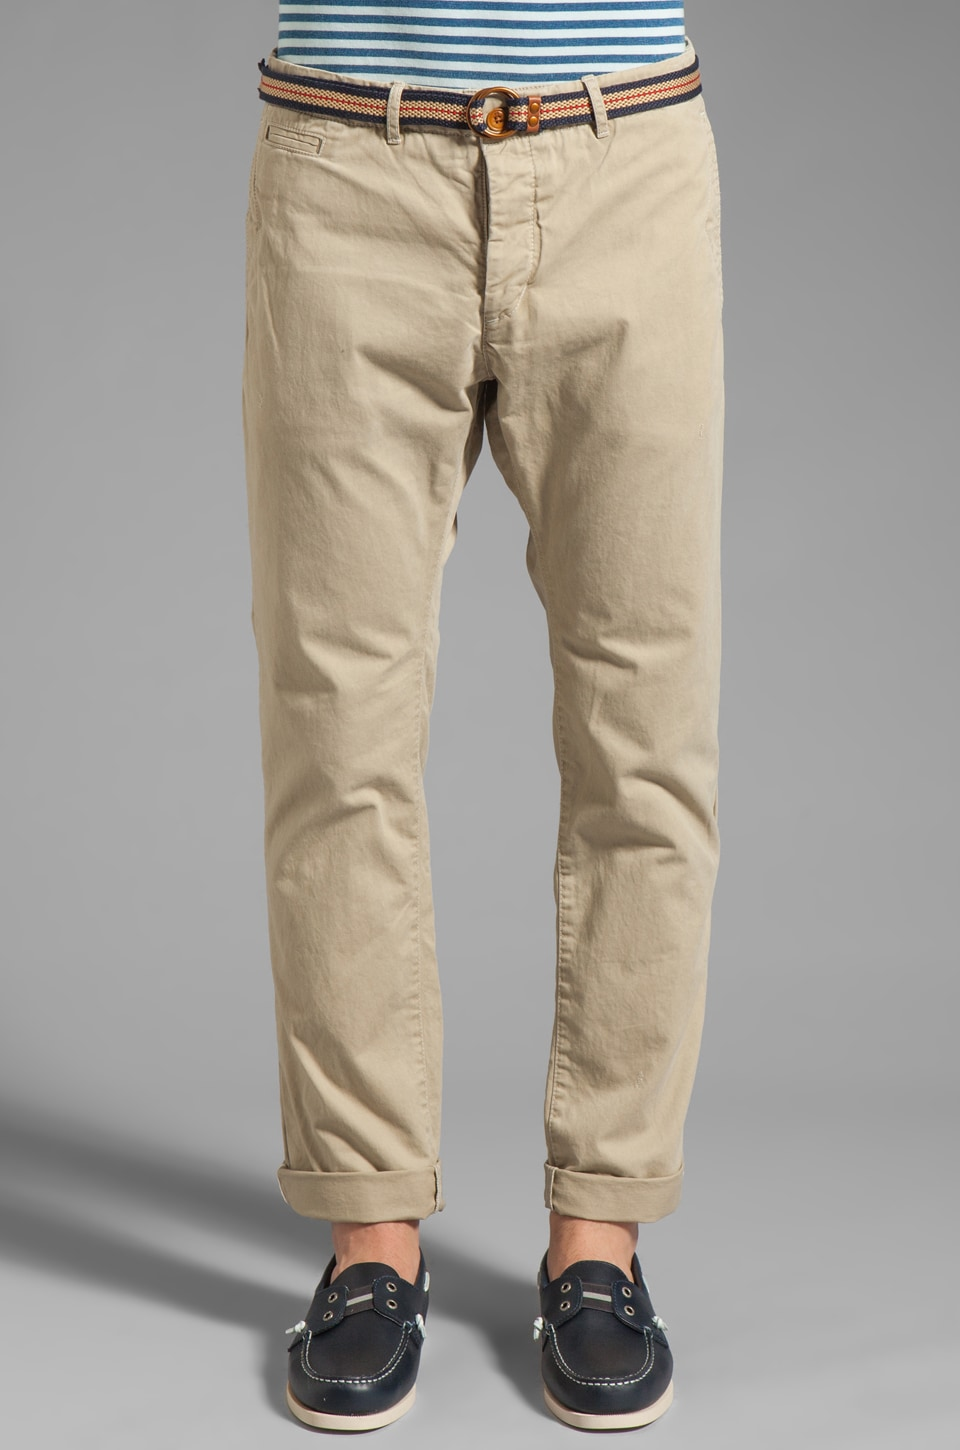 Scotch & Soda Belted Chino Pant in Sand